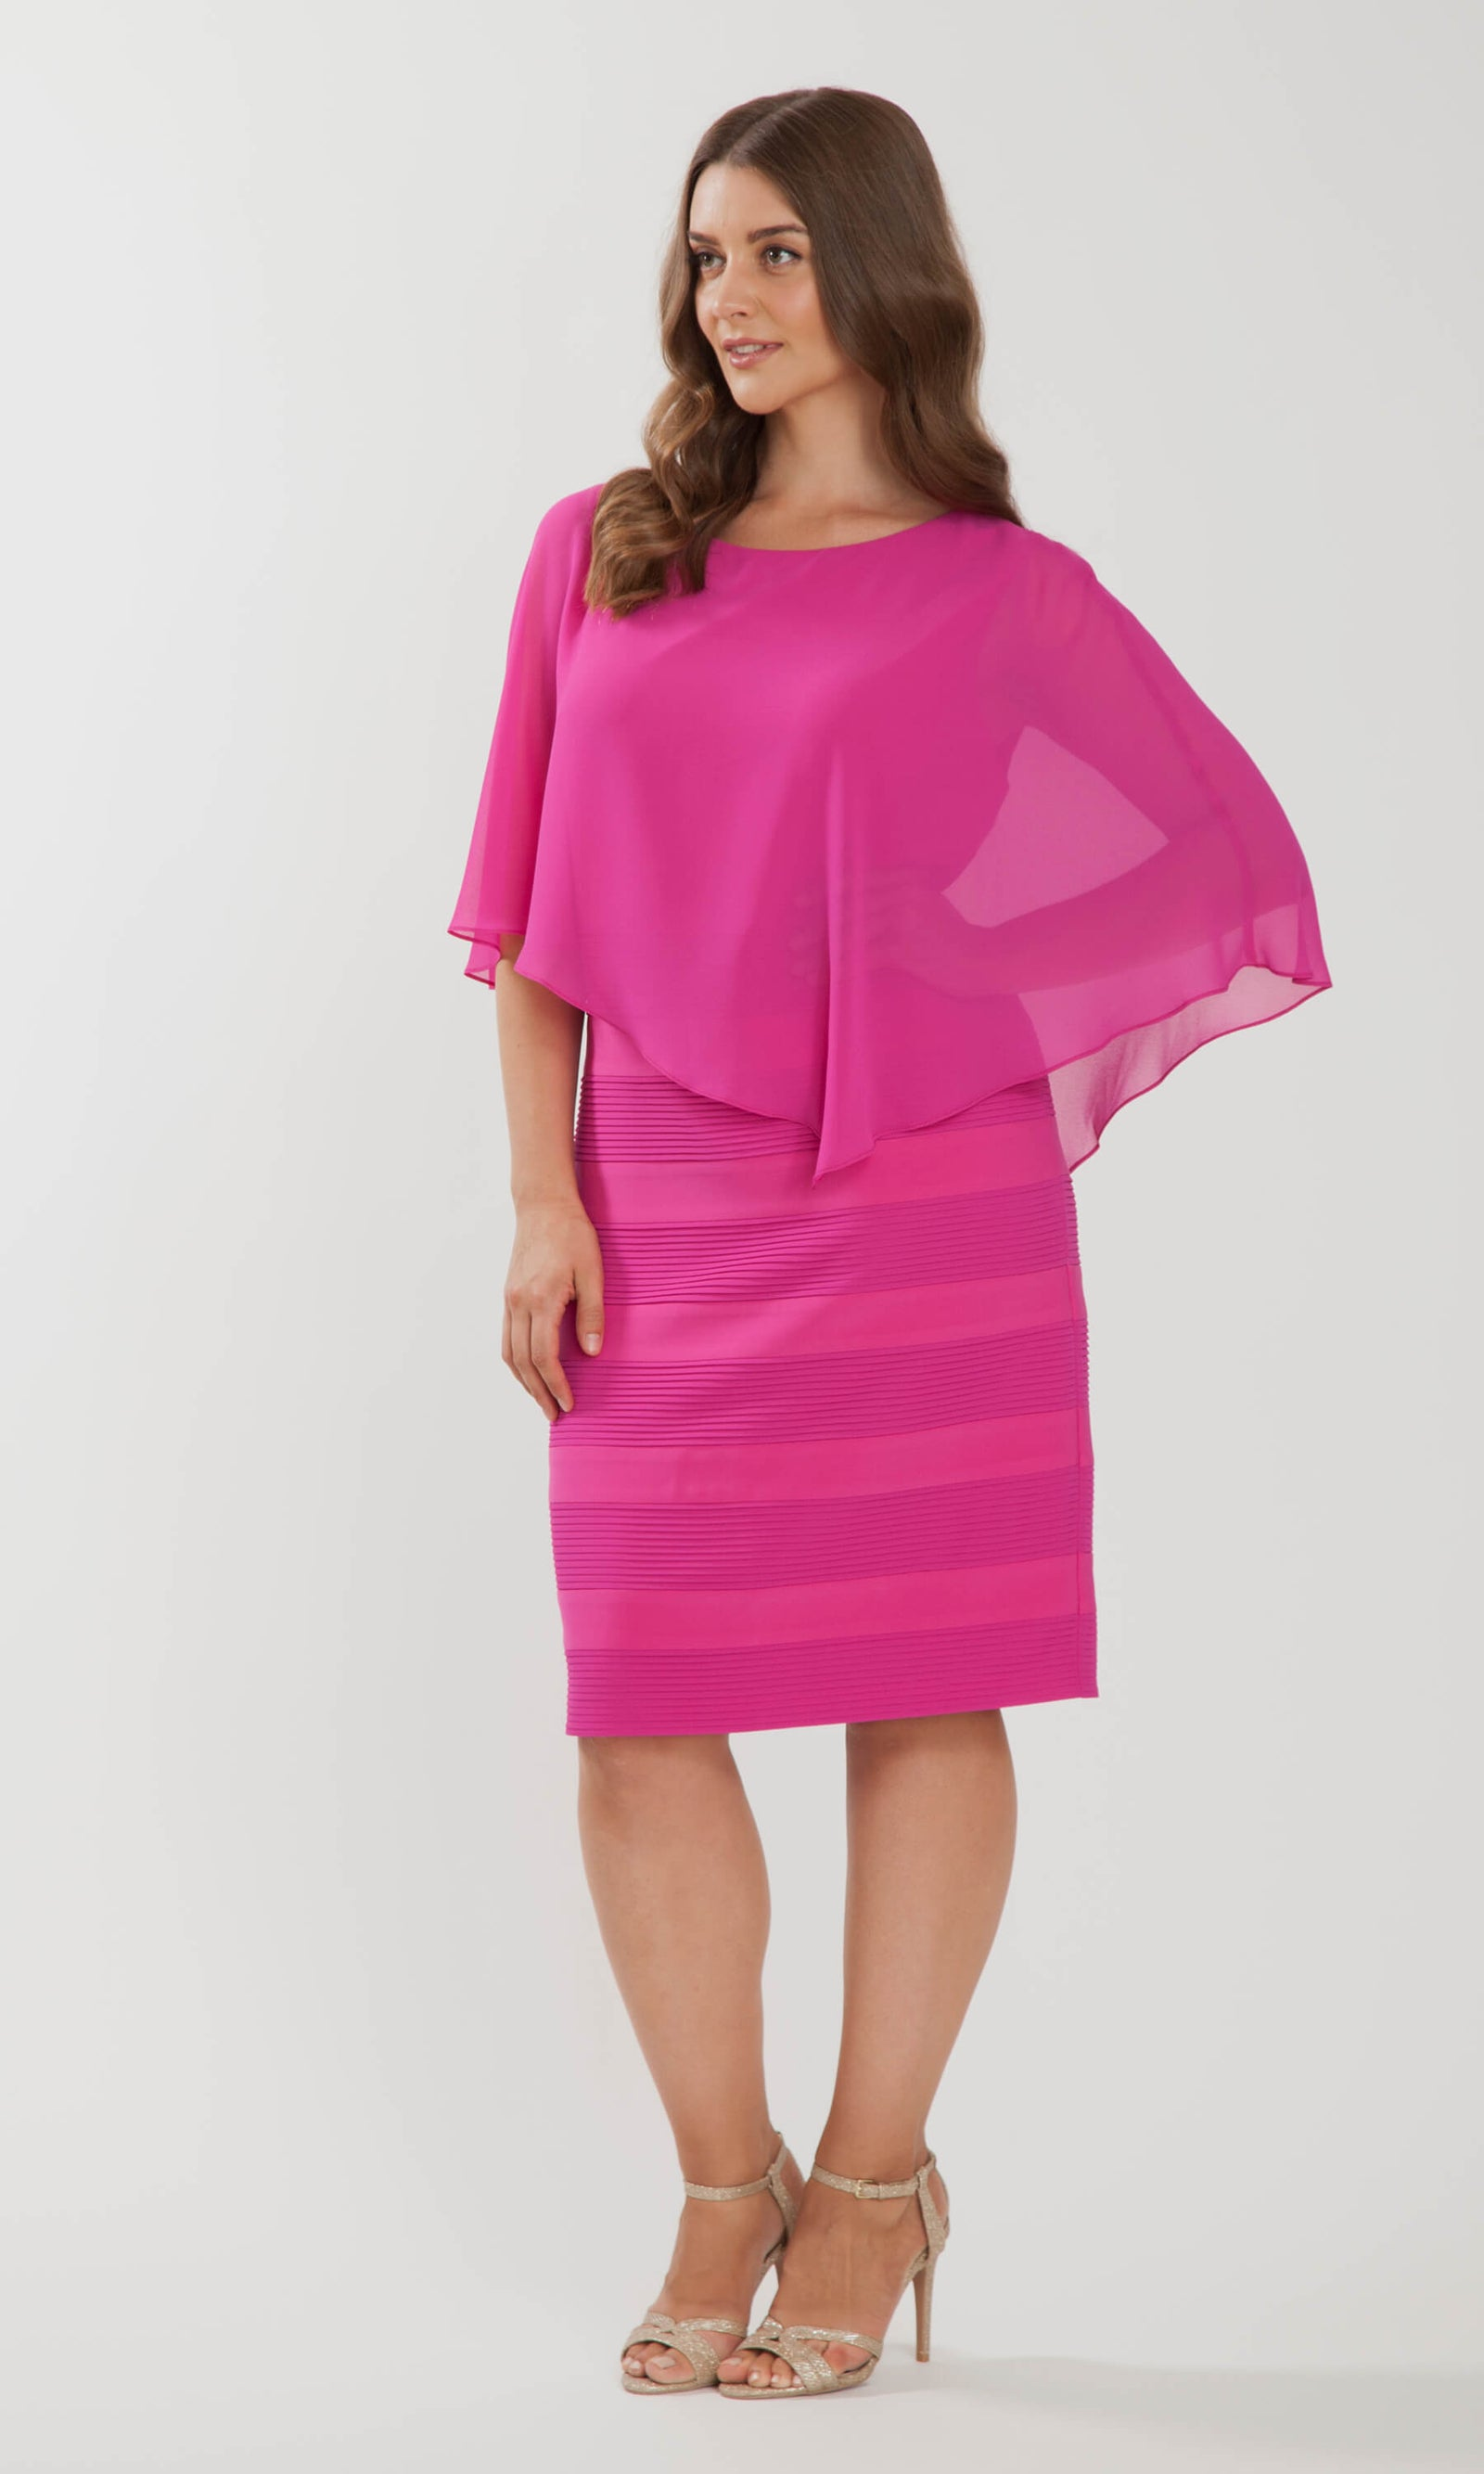 102 Rose Pink Personal Choice Dress With Chiffon Cape - Fab Frocks